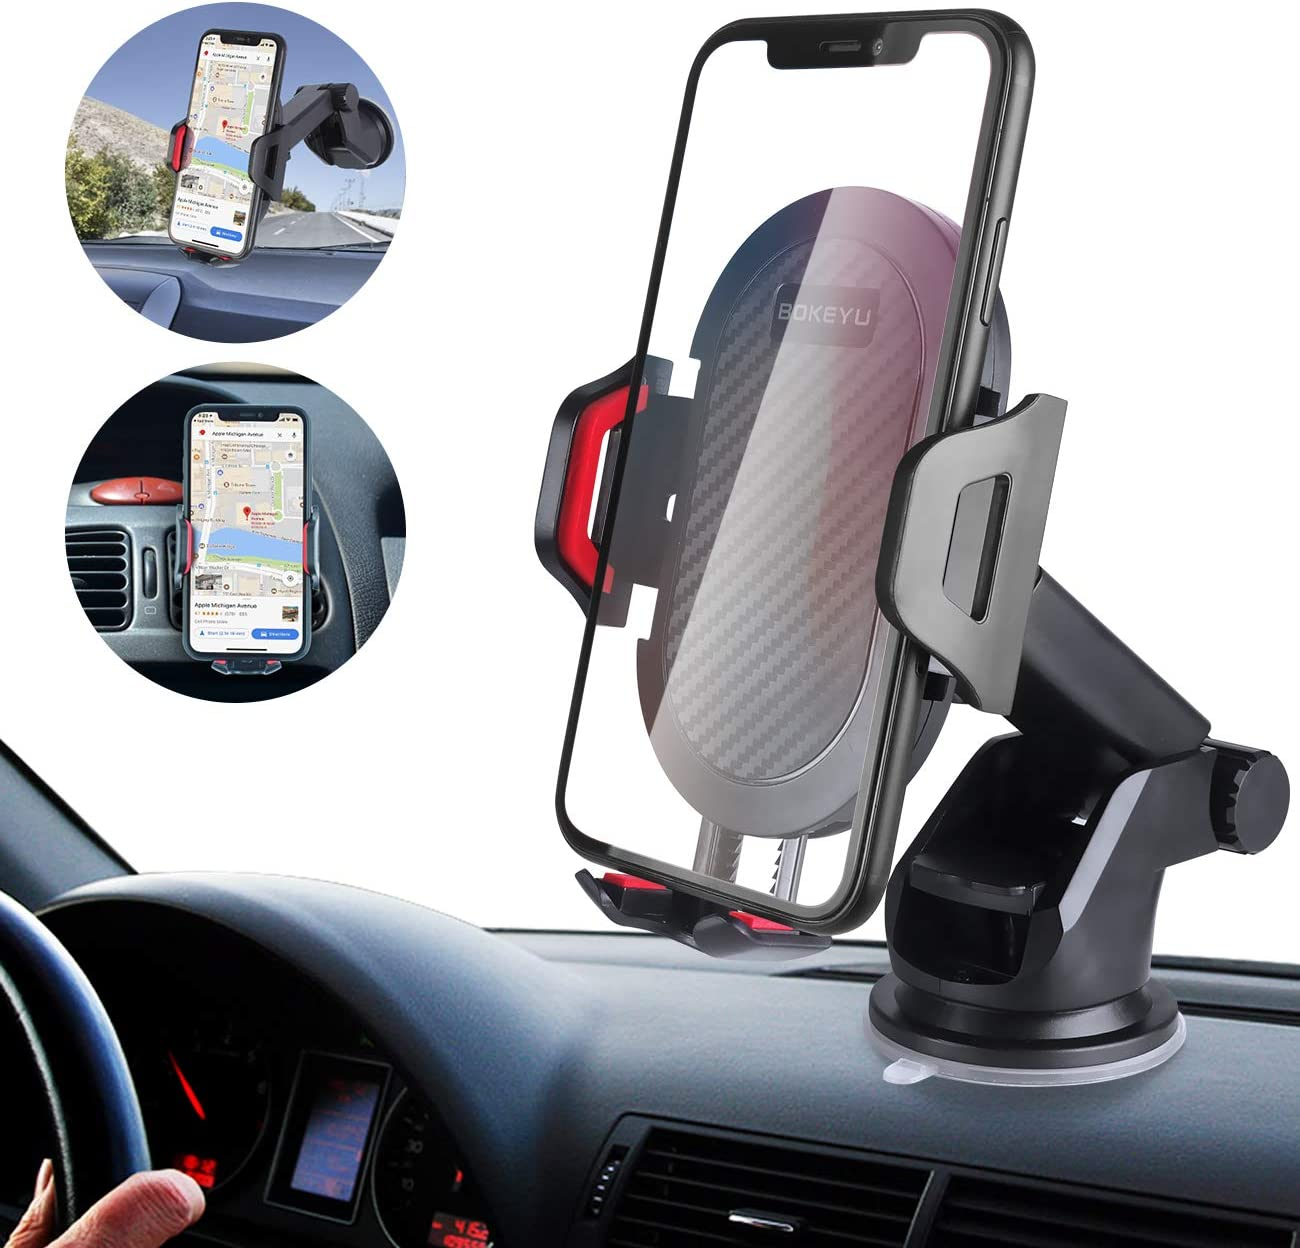 Car Phone Mount BOKEYU Dashboard Windshield Air Vent Cell Phone Holder for Car Adjustable Long Arm Strong Sticky Suction One Button Release Perfect for iPhone Samsung Galaxy Smartphones and Others